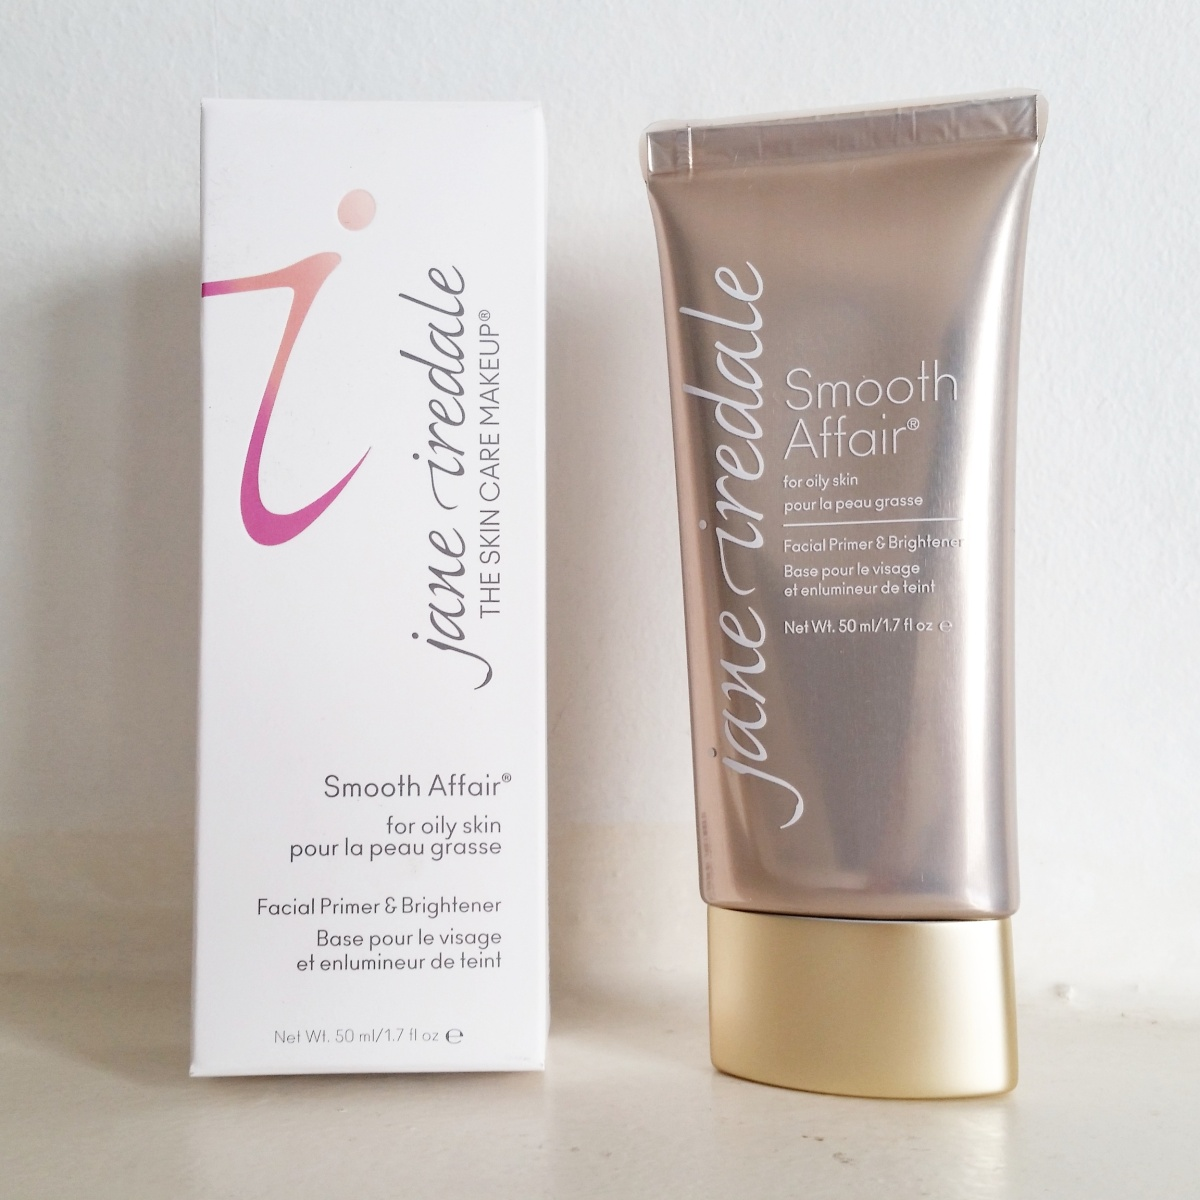 Review: New Jane Iredale Smooth Affair for Oily Skin Facial Primer & Brightener